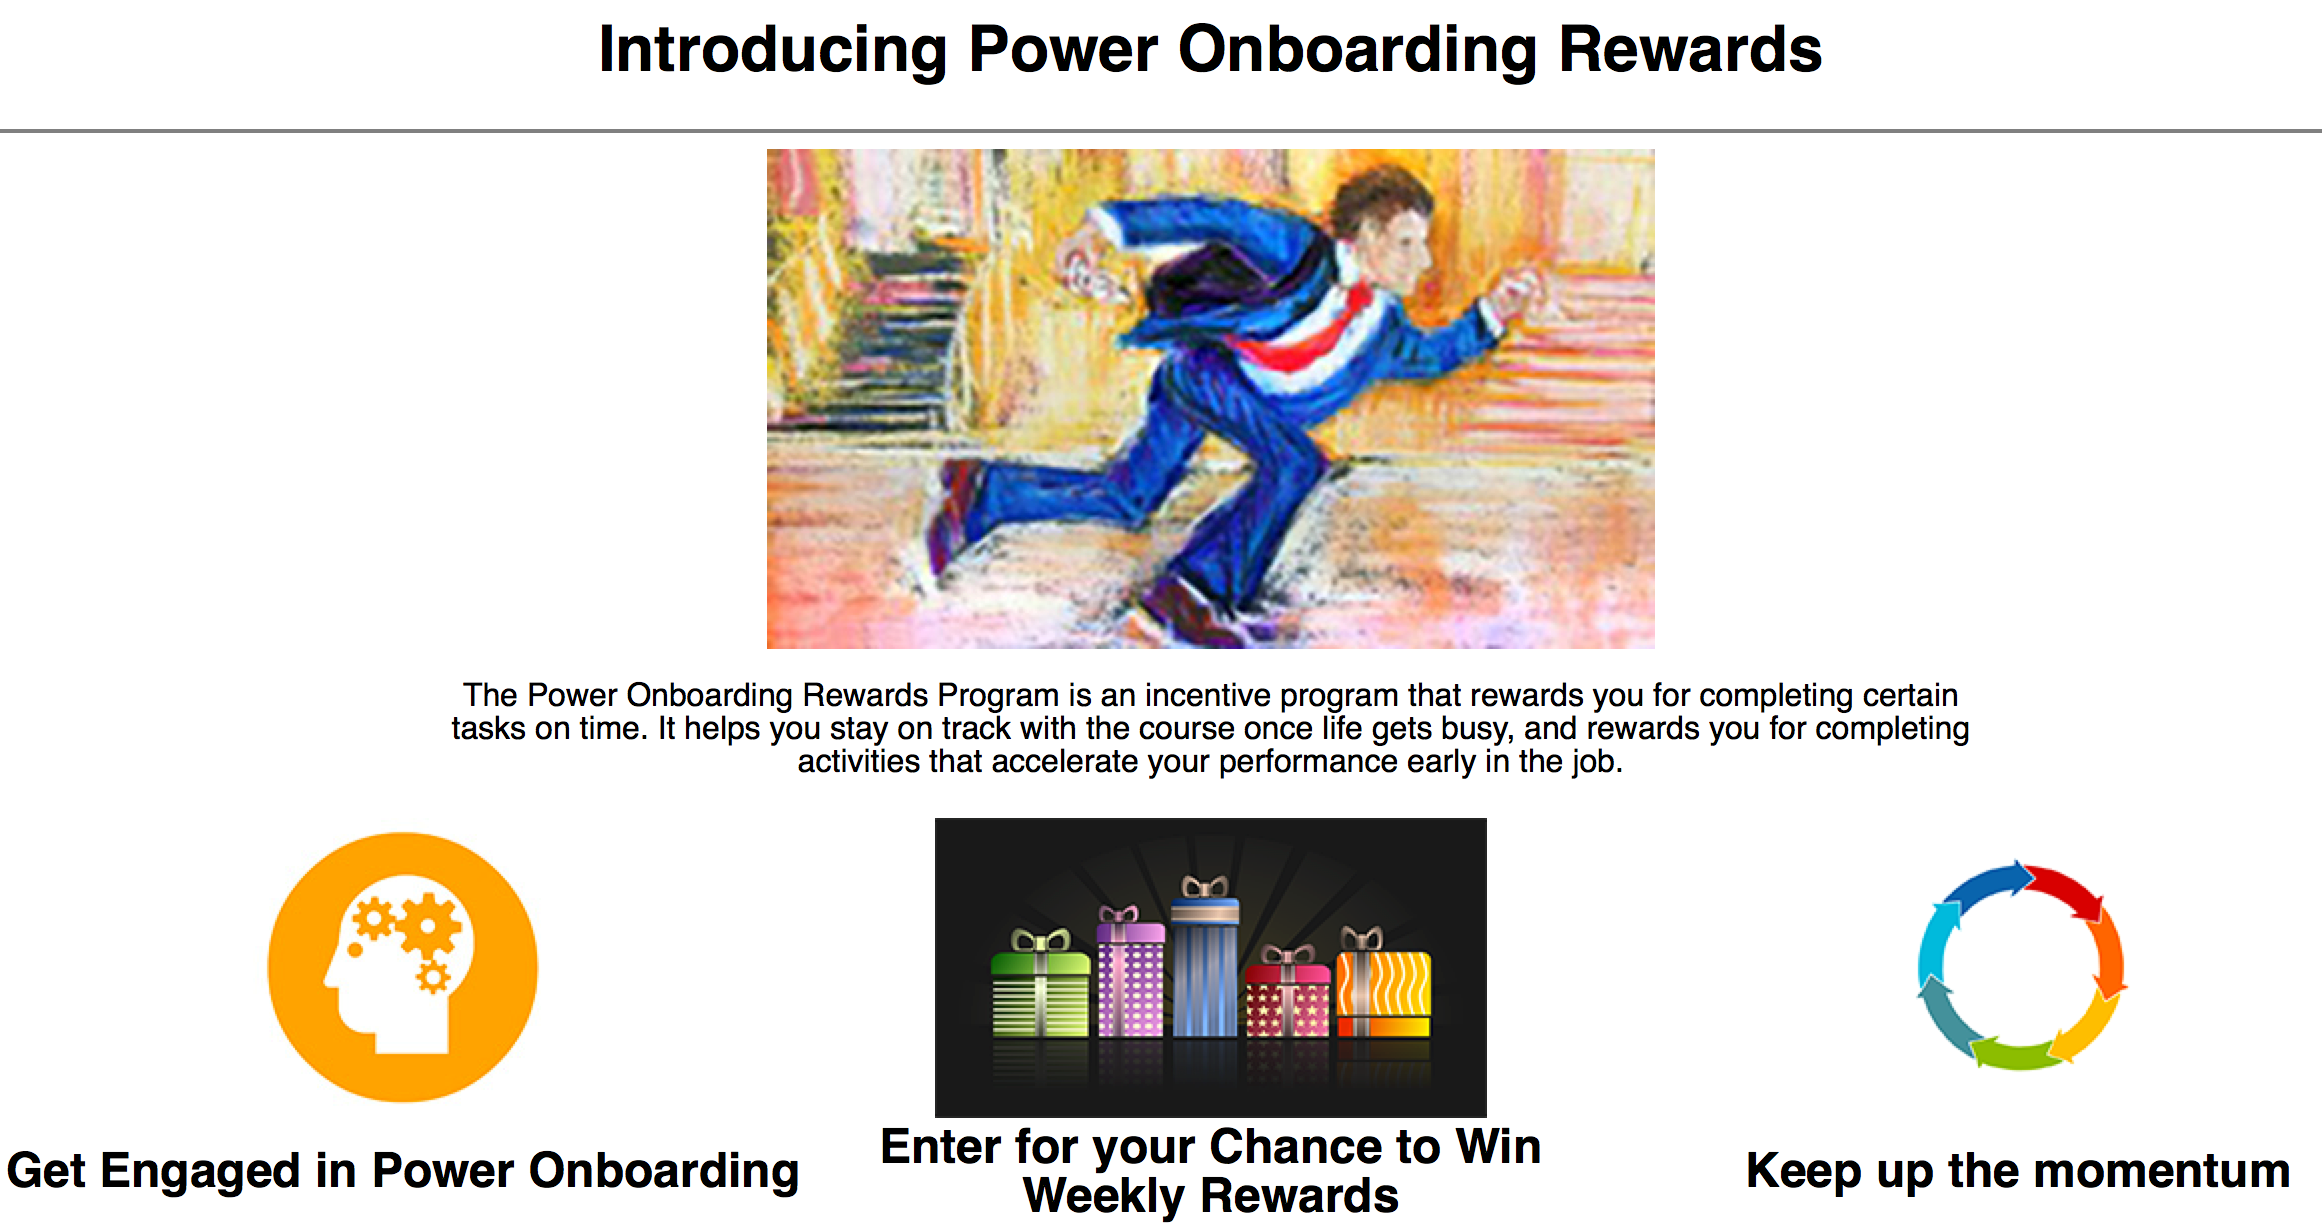 Leveraging Loyalty Rewards Programs to Incentivize MOOC Completion